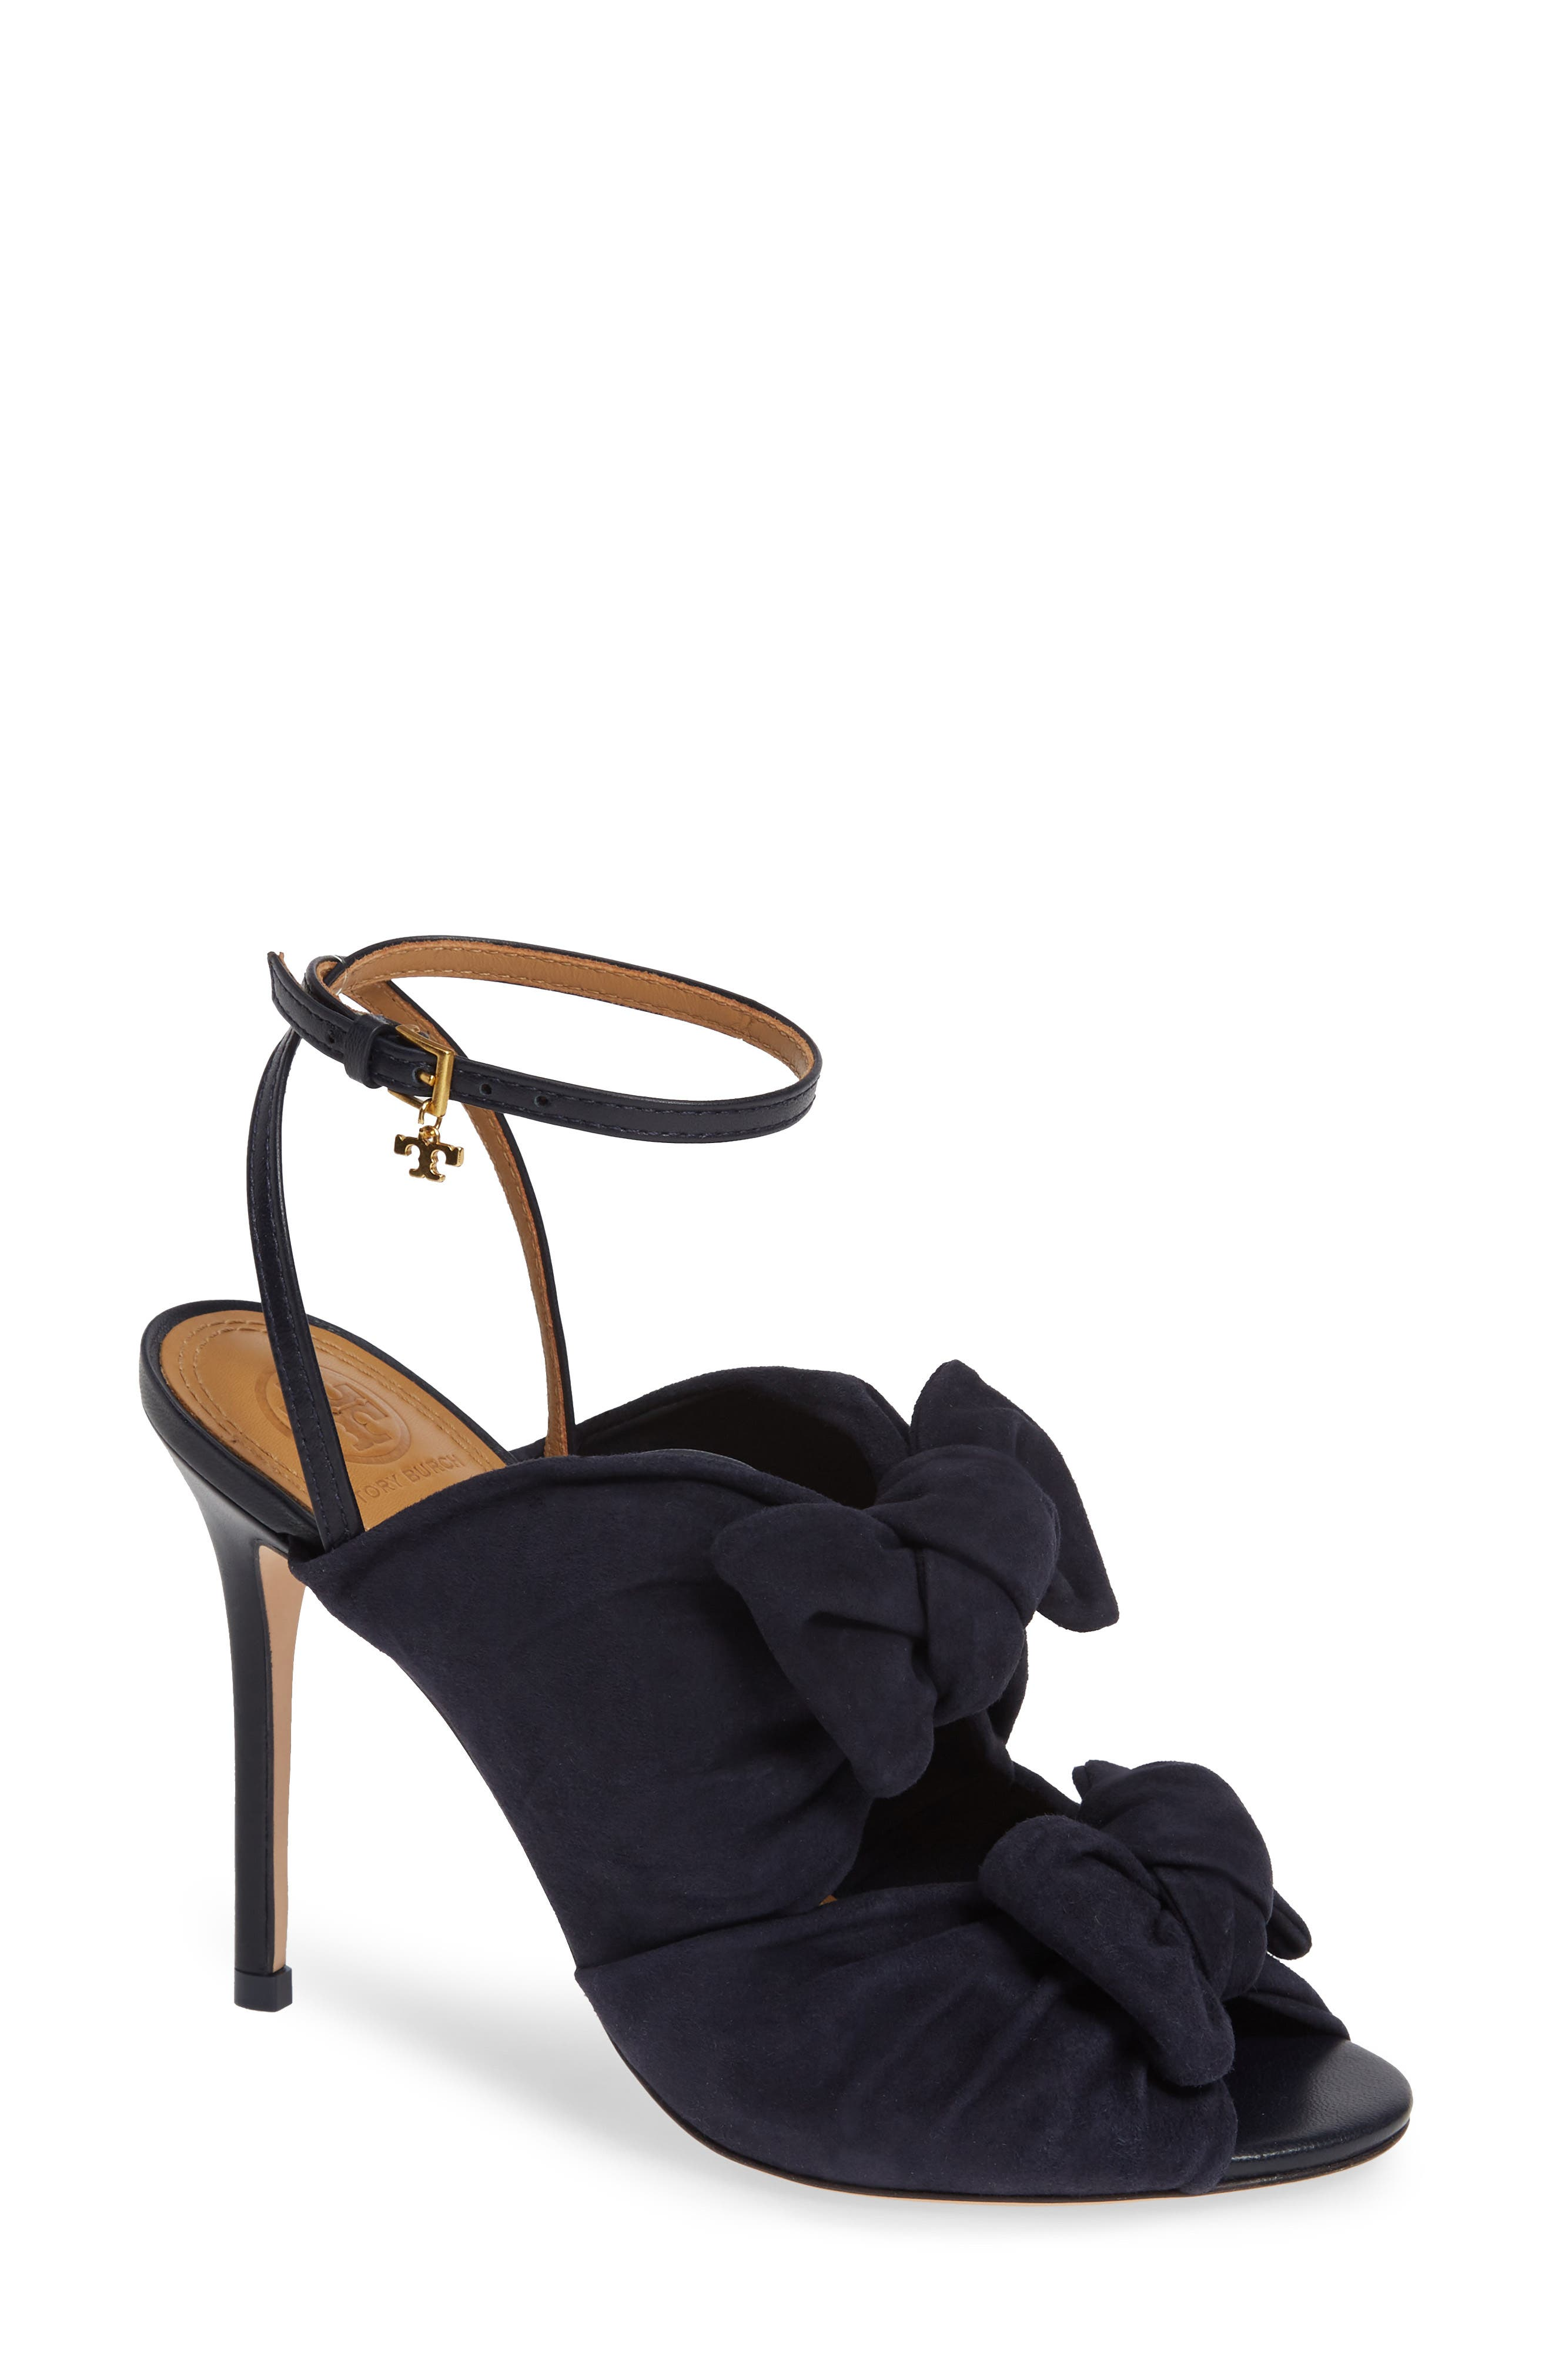 Tory Burch Eleanor Knotted Sandal, Blue